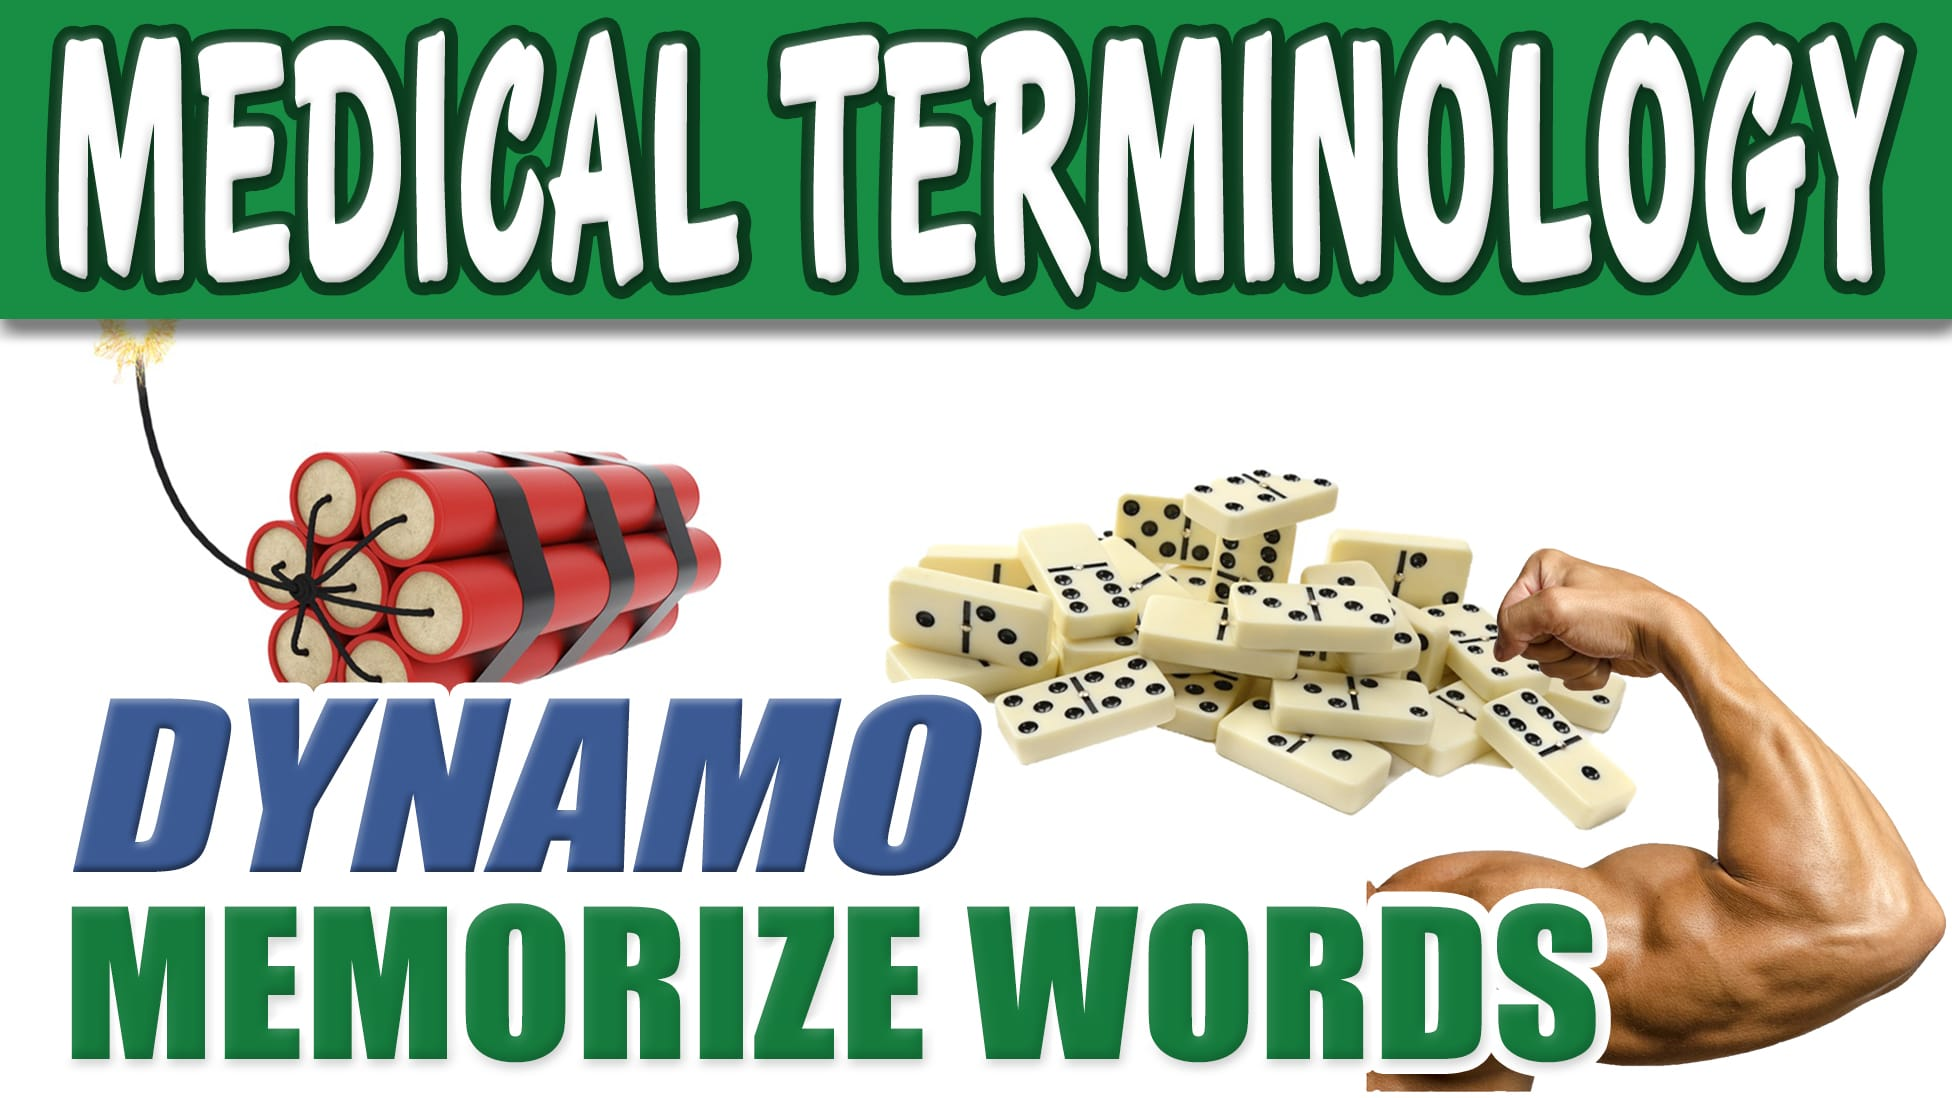 Medical Terminology Course - DYNAMO | Dictionary List